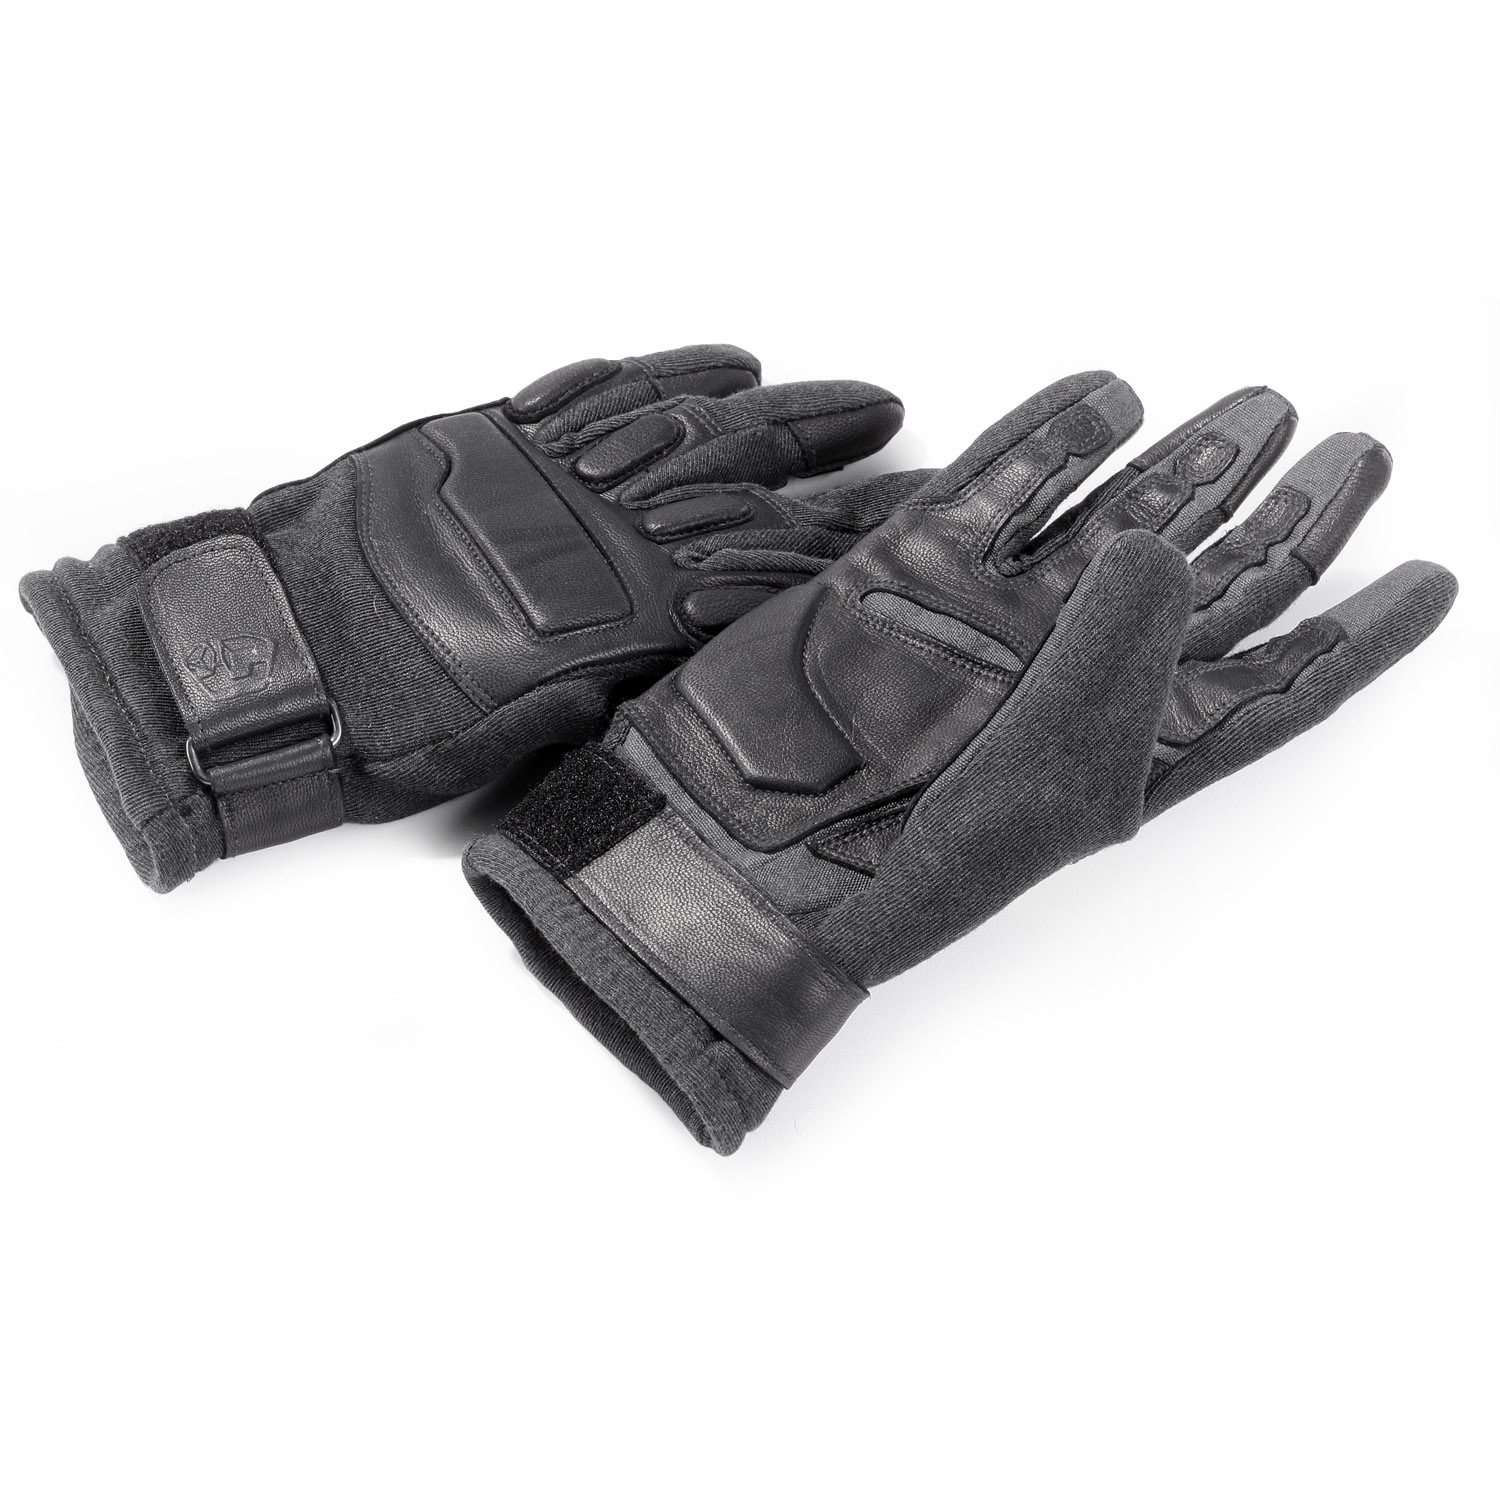 ThorShield Protector Multi Threat Duty Gloves